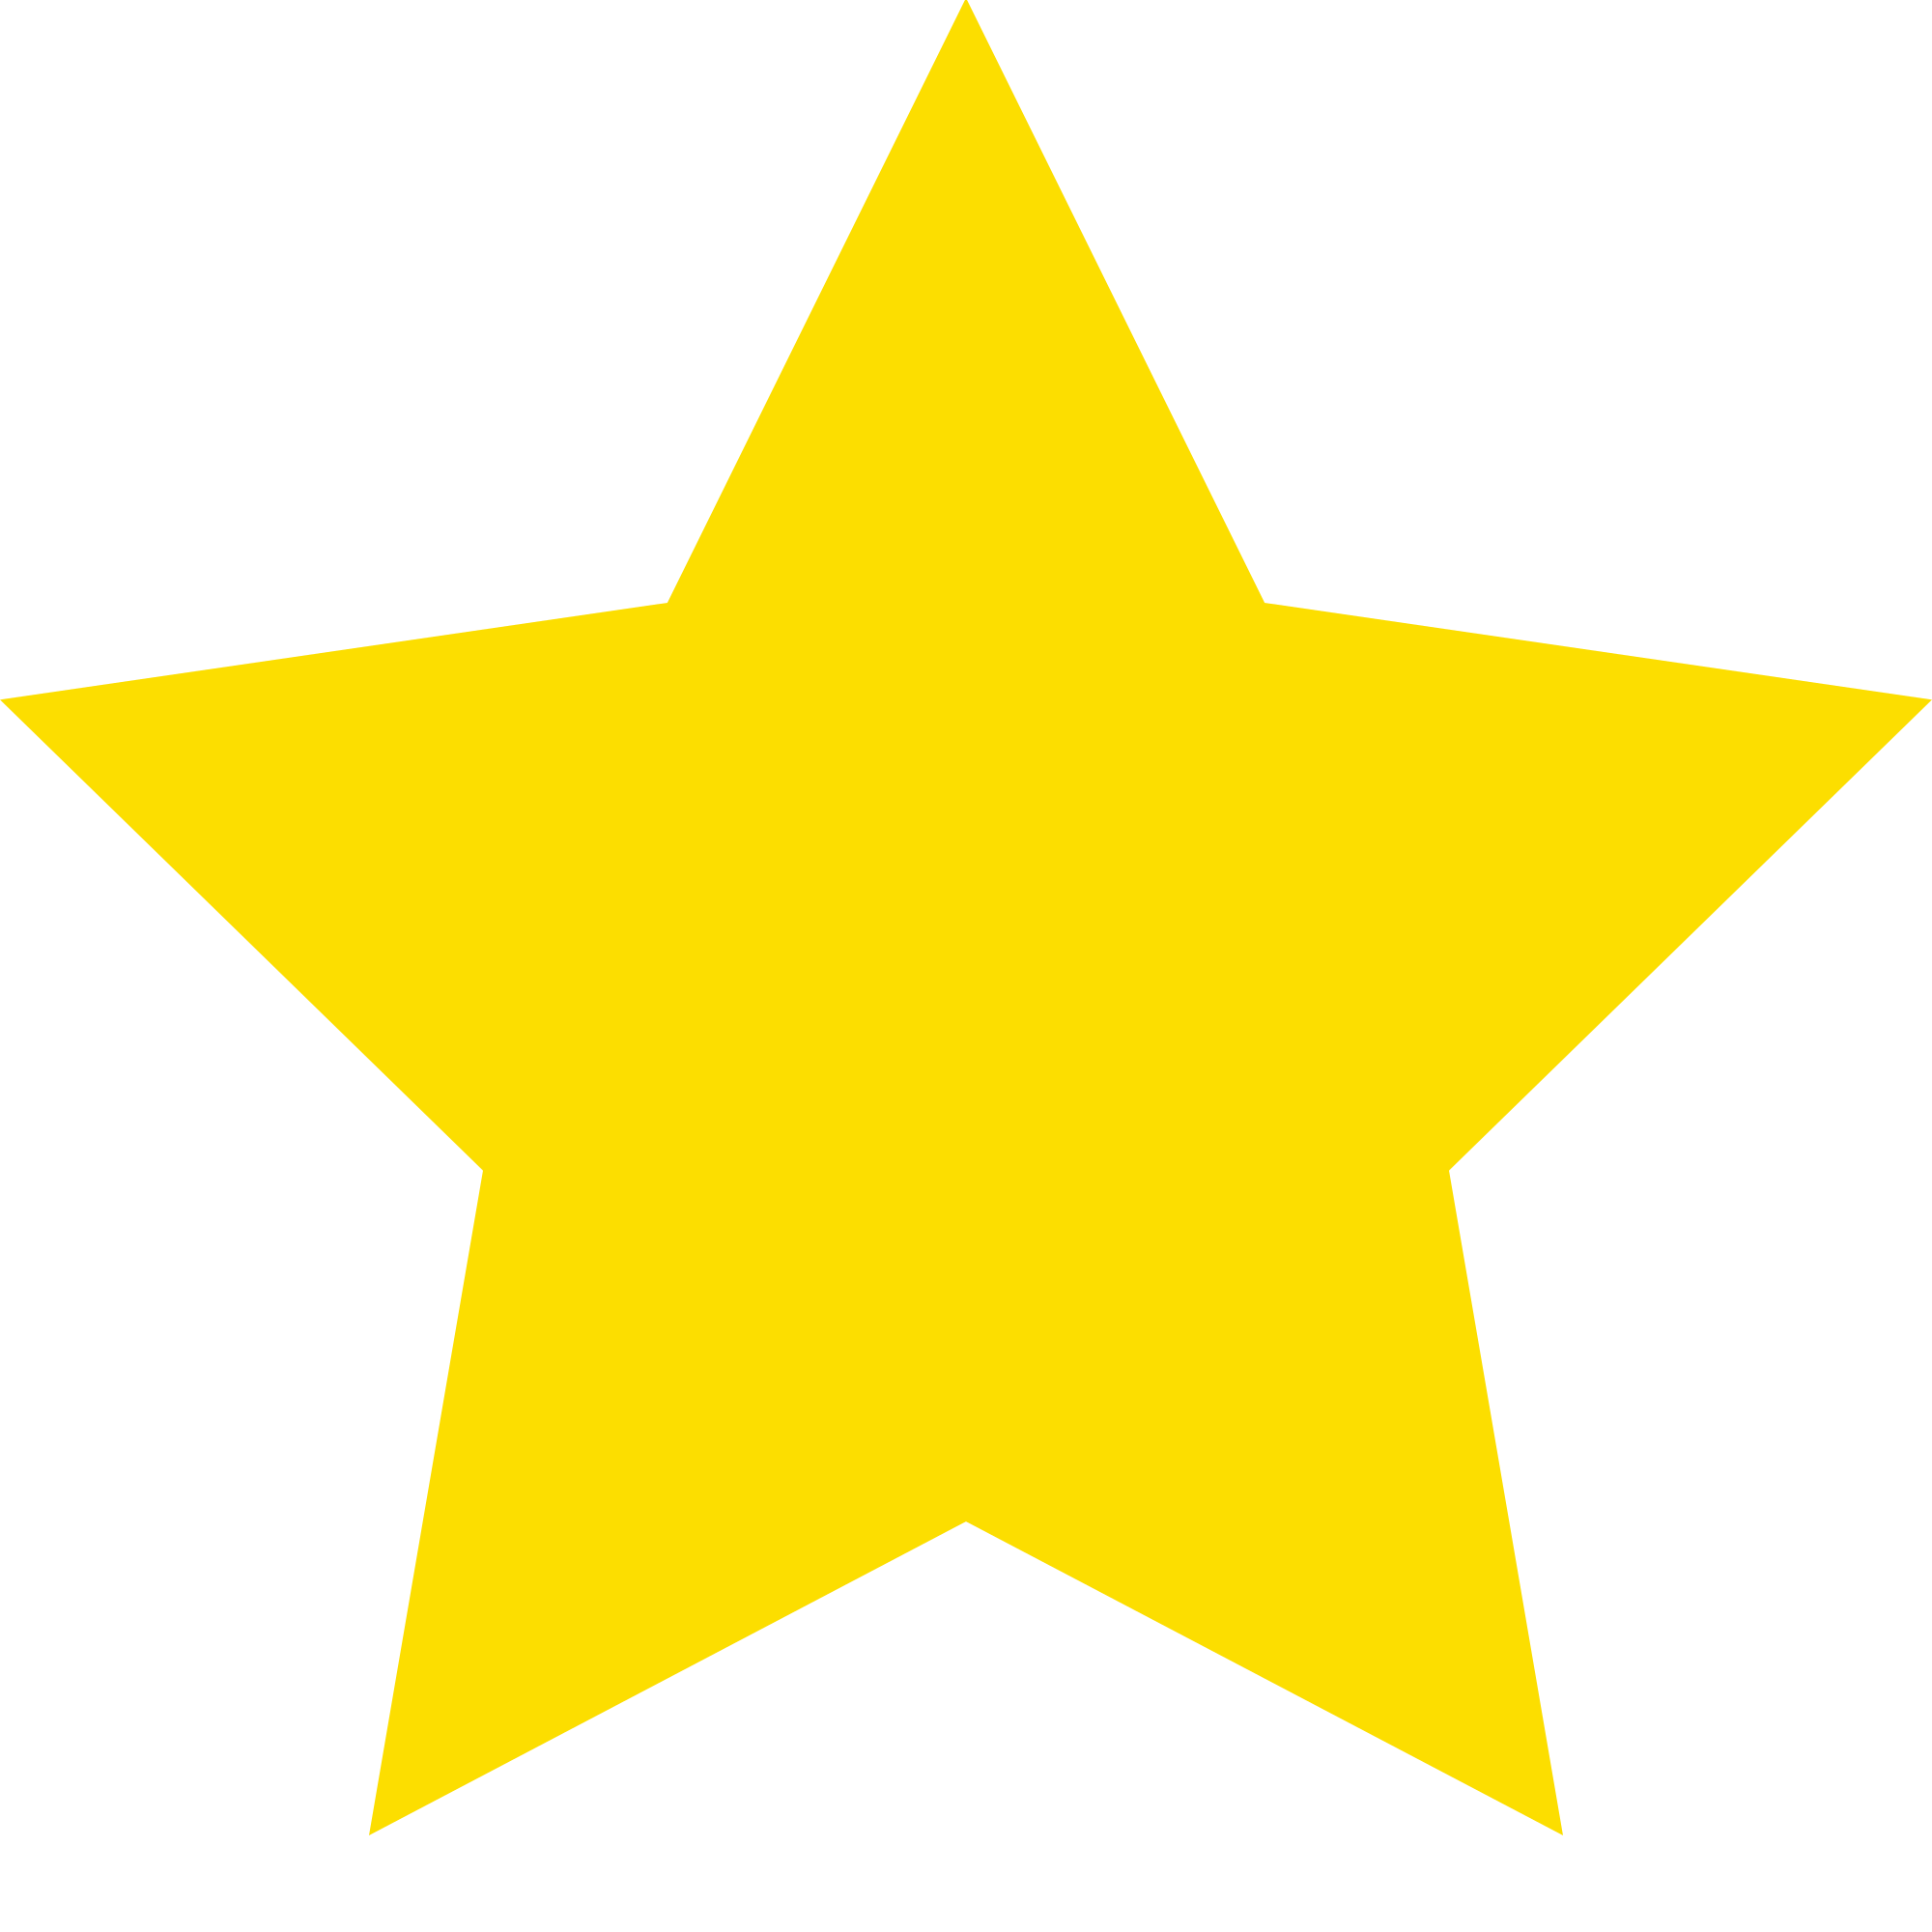 Small star clipart